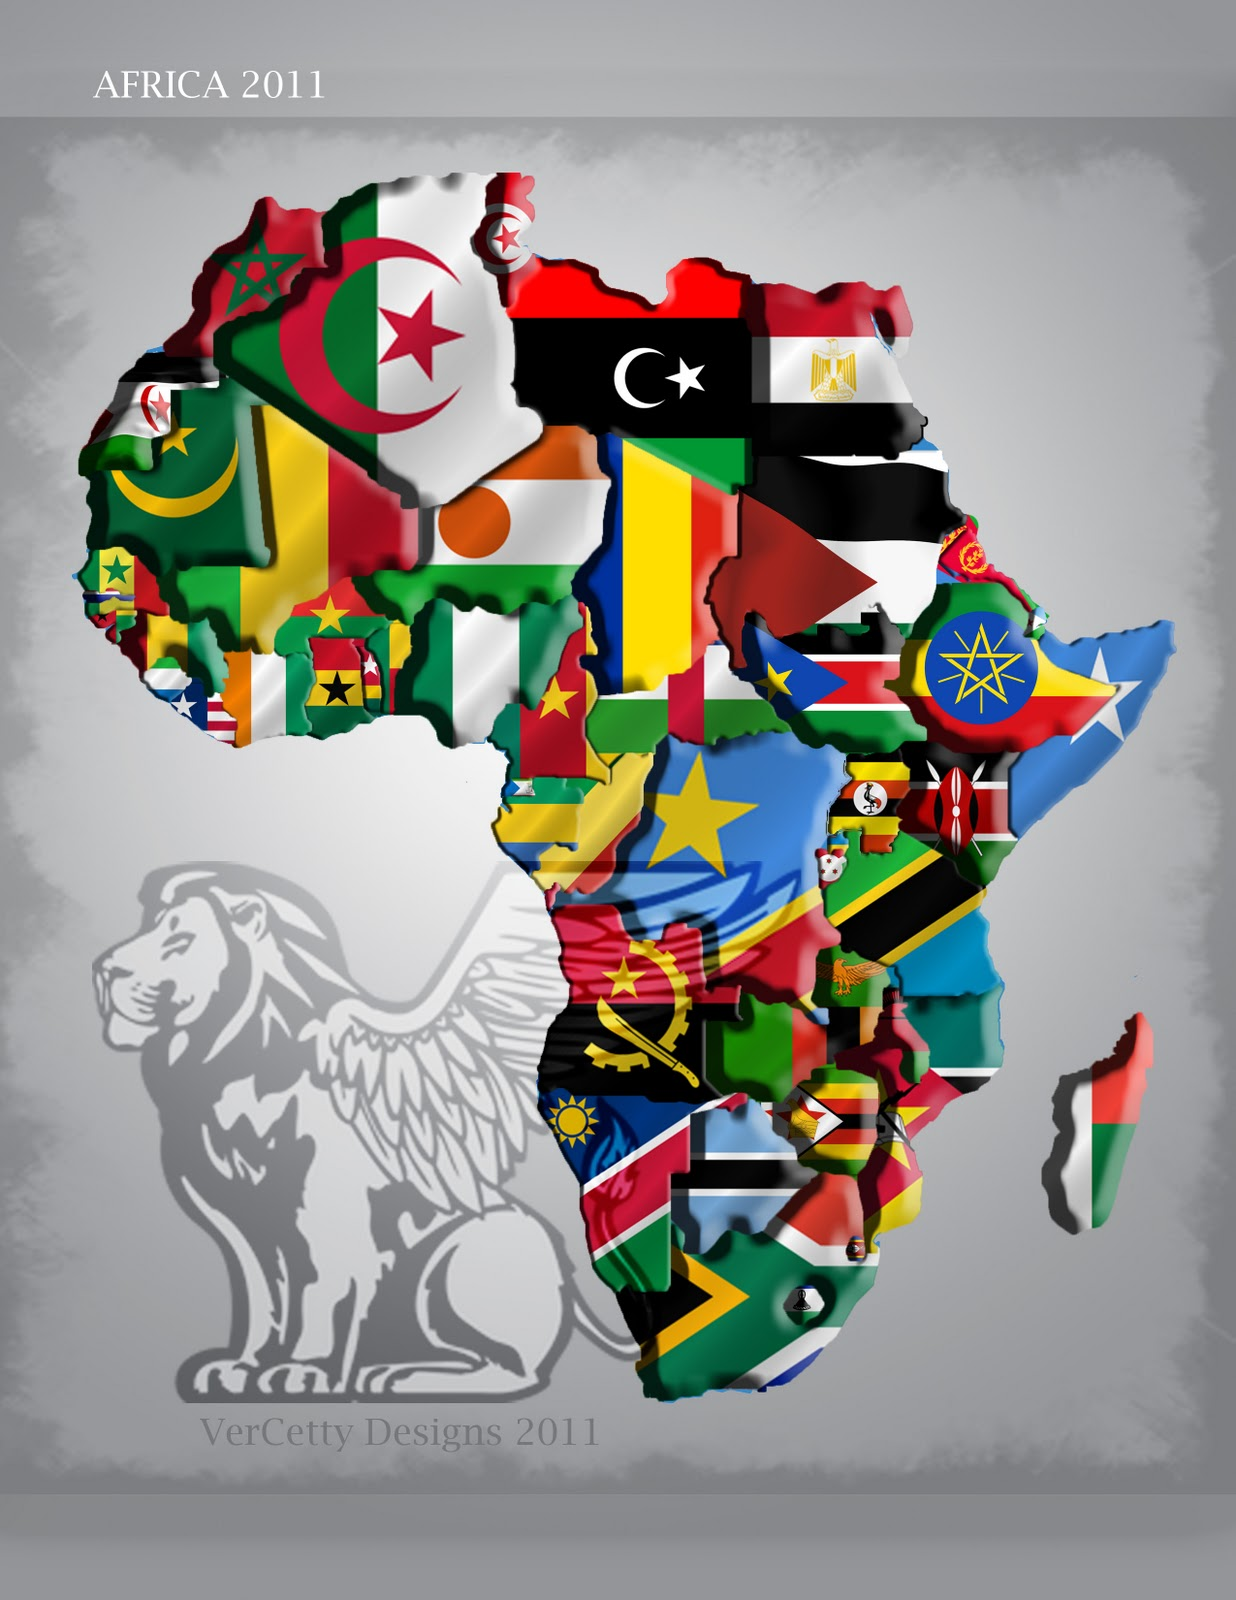 New Africa Flag Map 2011 By Quentin Vercetty